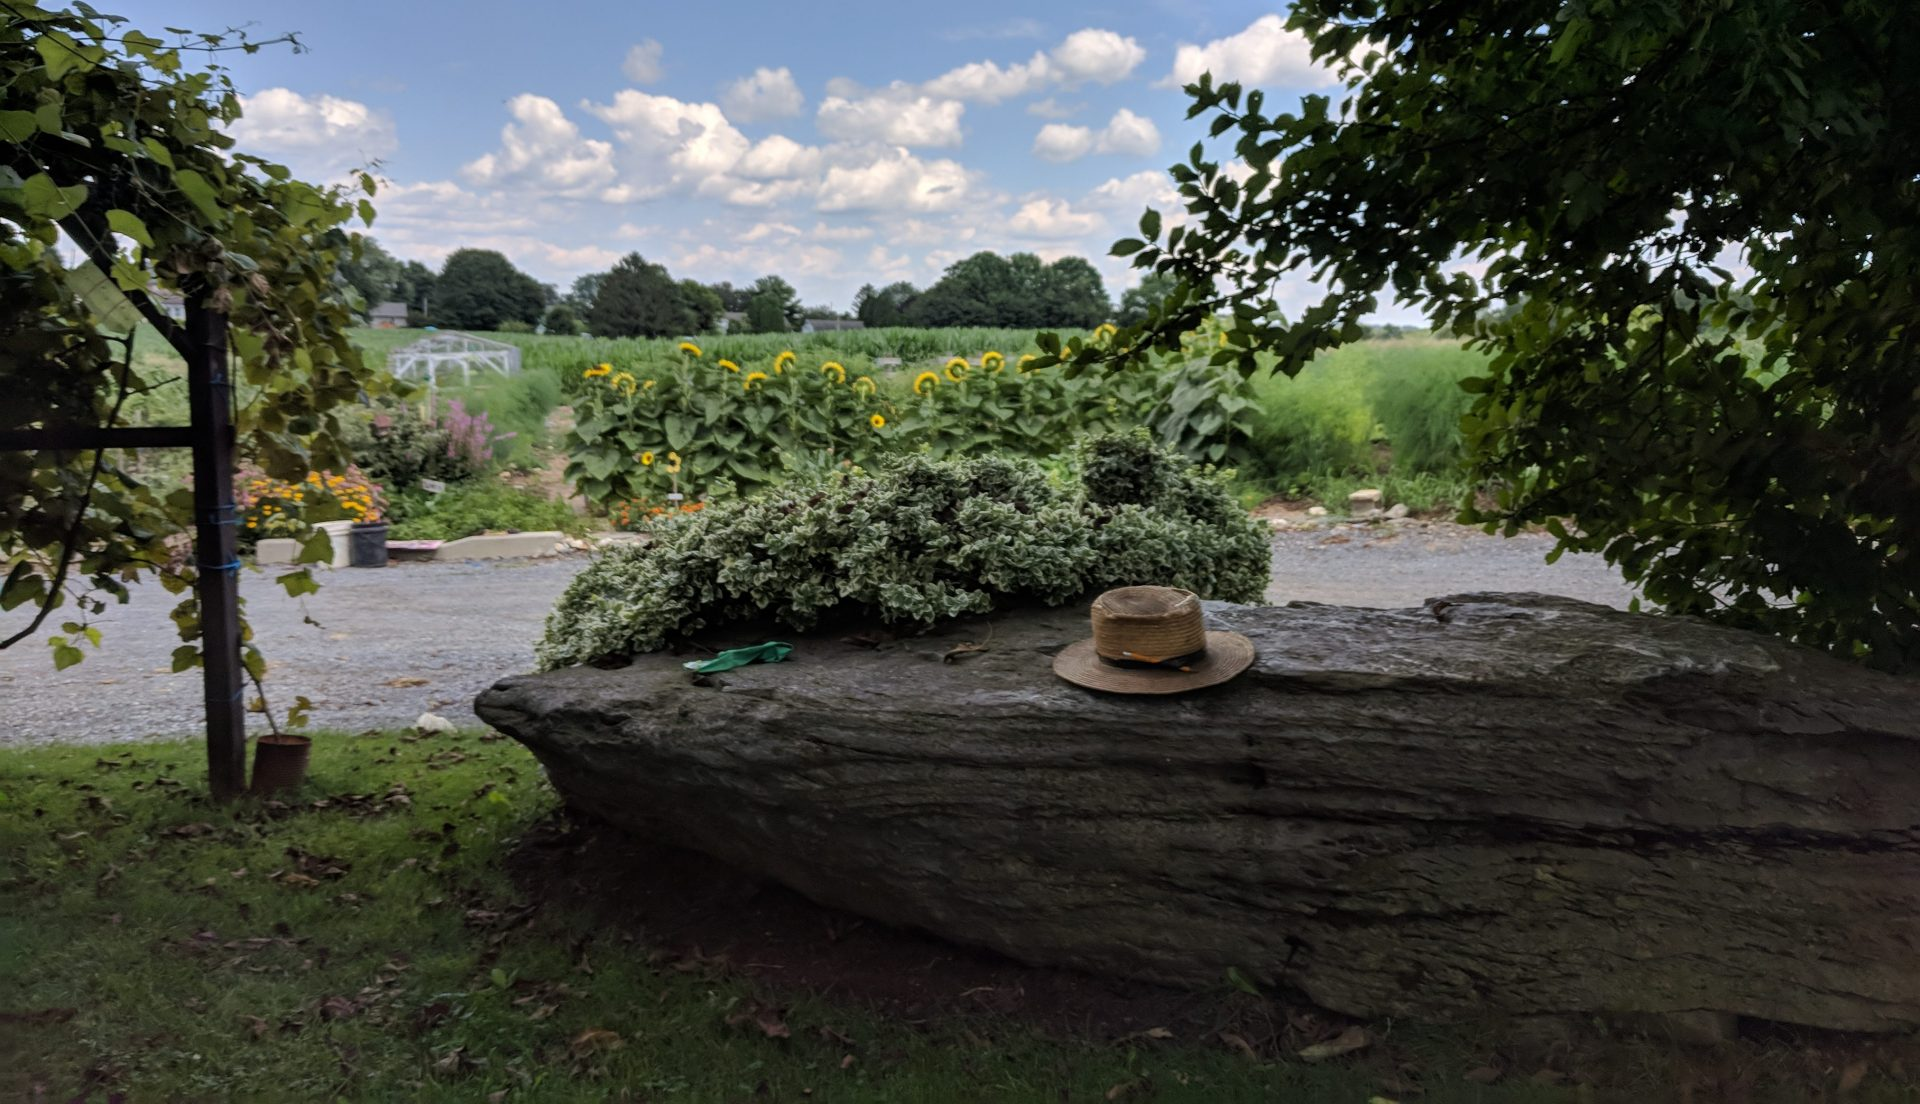 An Amish man's hat rests on a rock outside a farmhouse in Leacock Township, Lancaster County, on July 24, 2019.